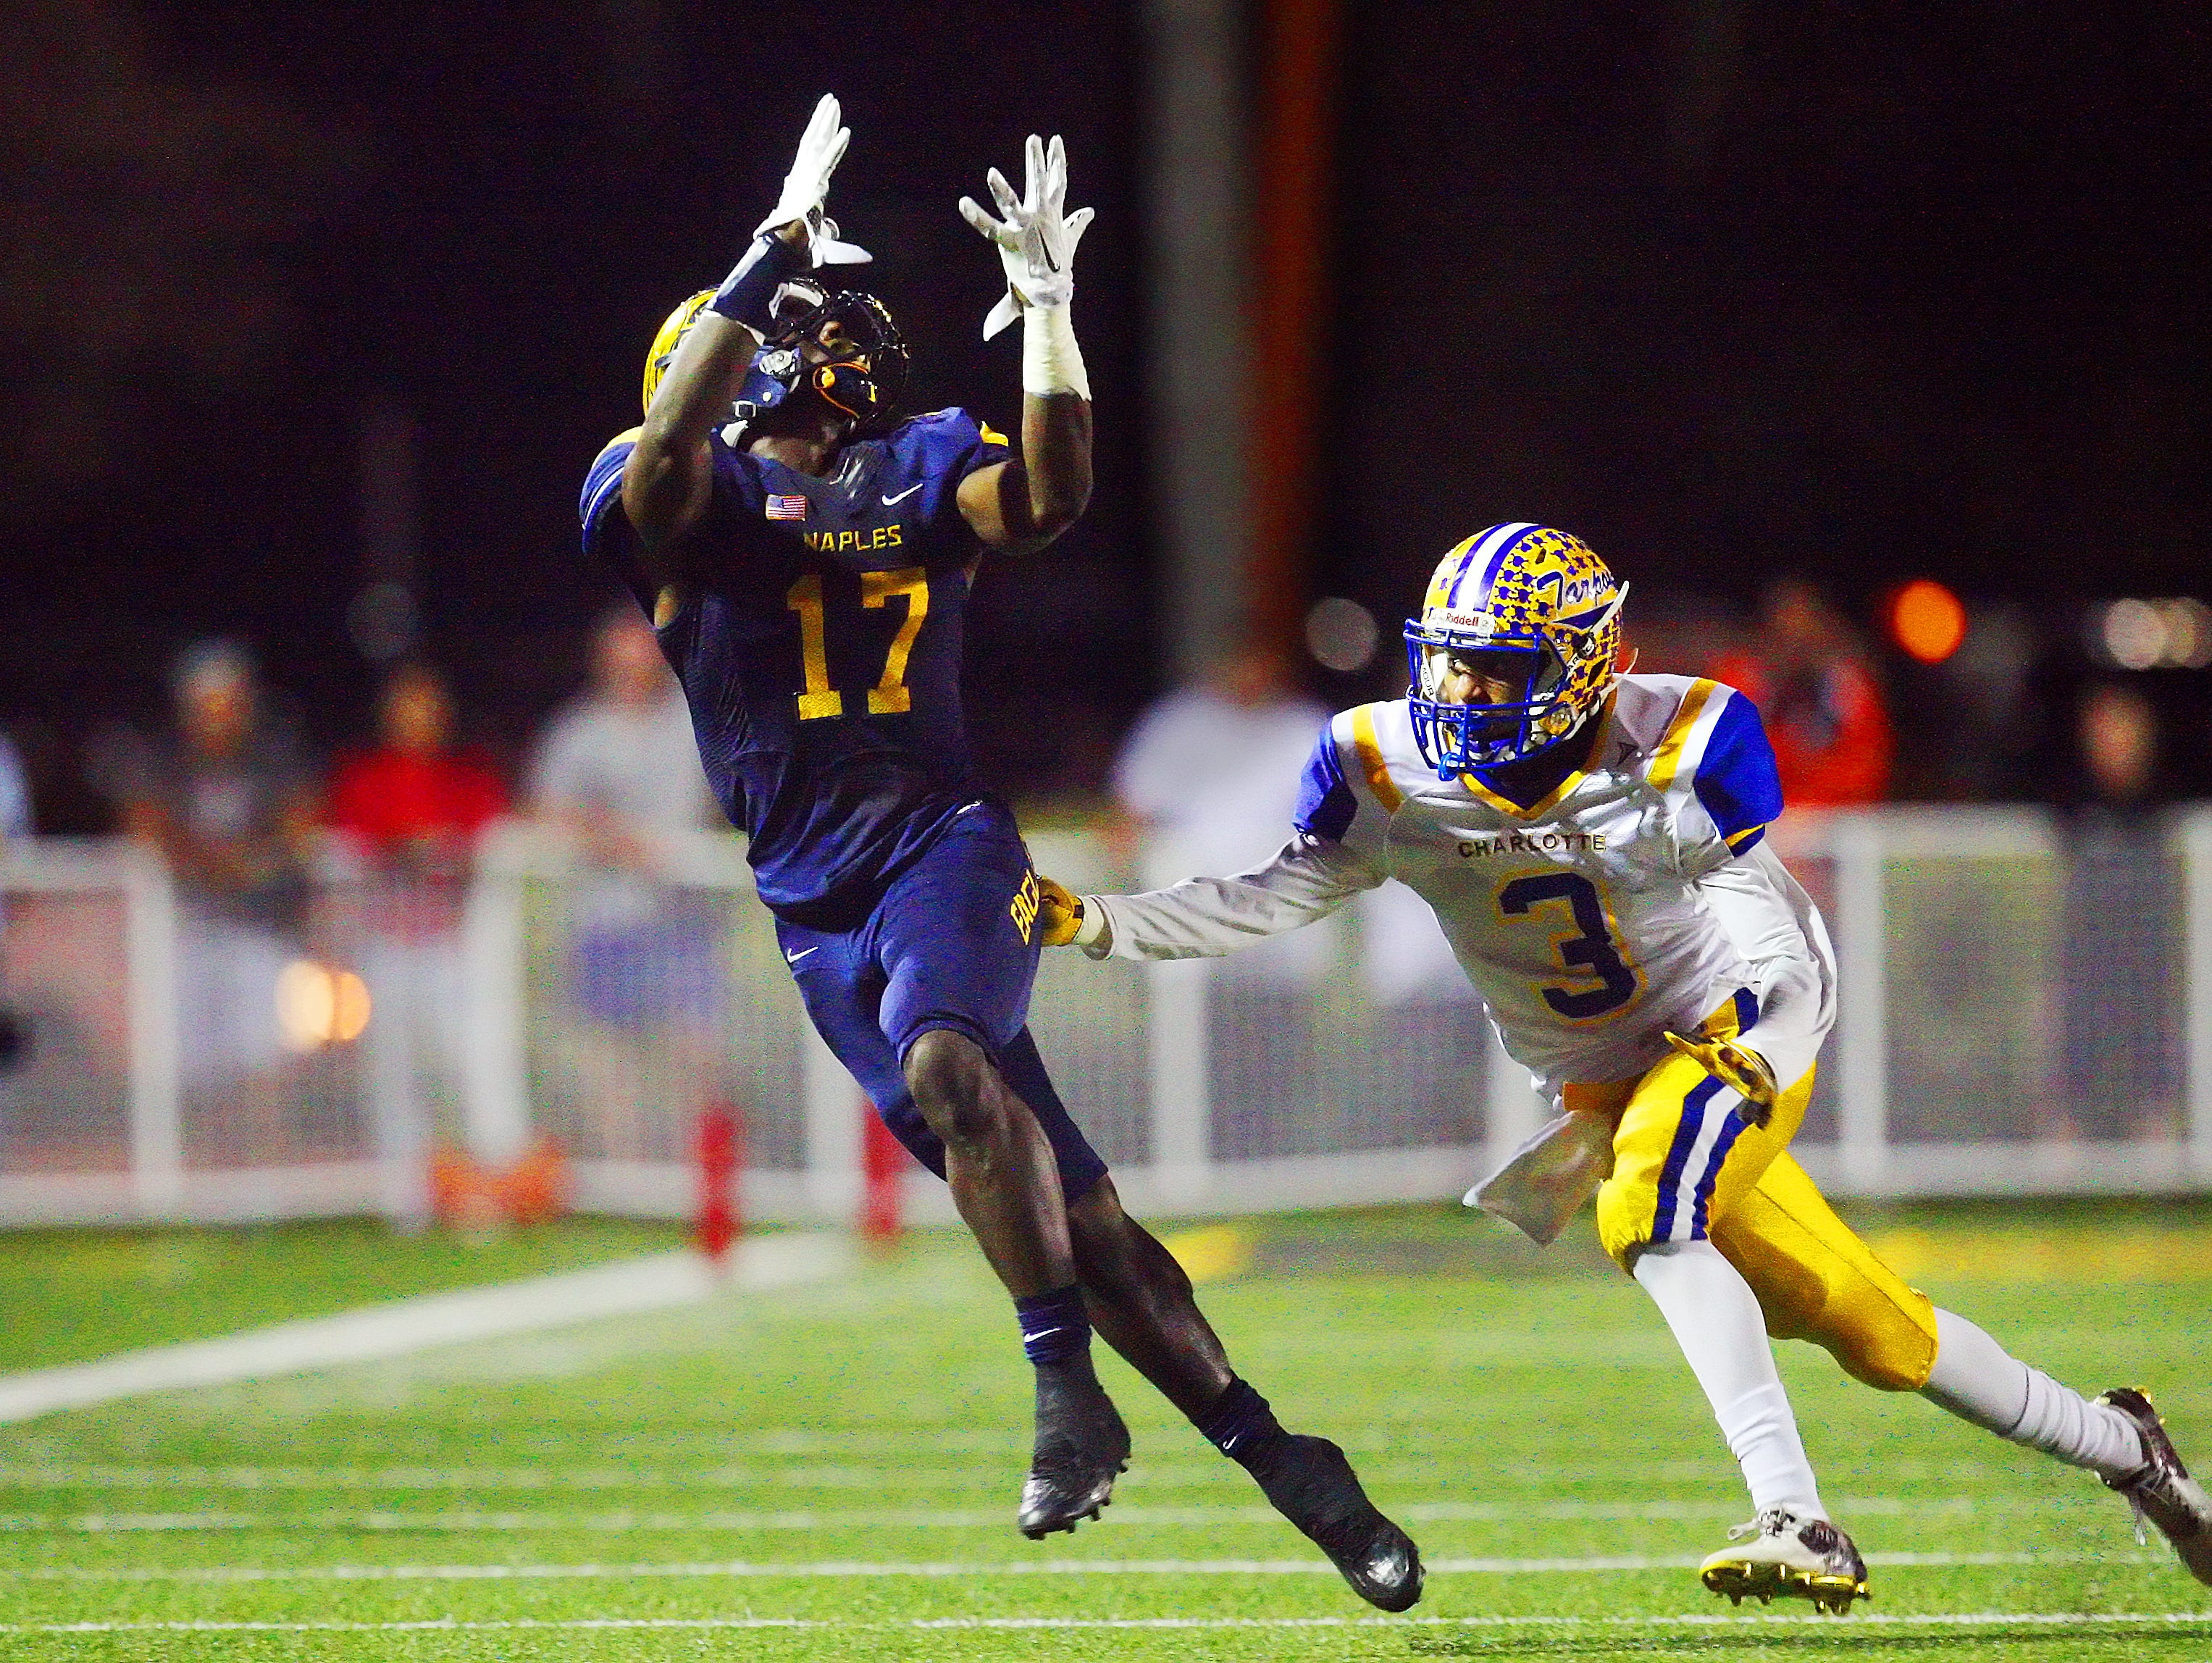 Naples High School's Tyler Byrd leaps for a pass against Charlotte during the Class 6A Region 3 final Friday at Naples High School. Naples beat Charlotte 35-0.